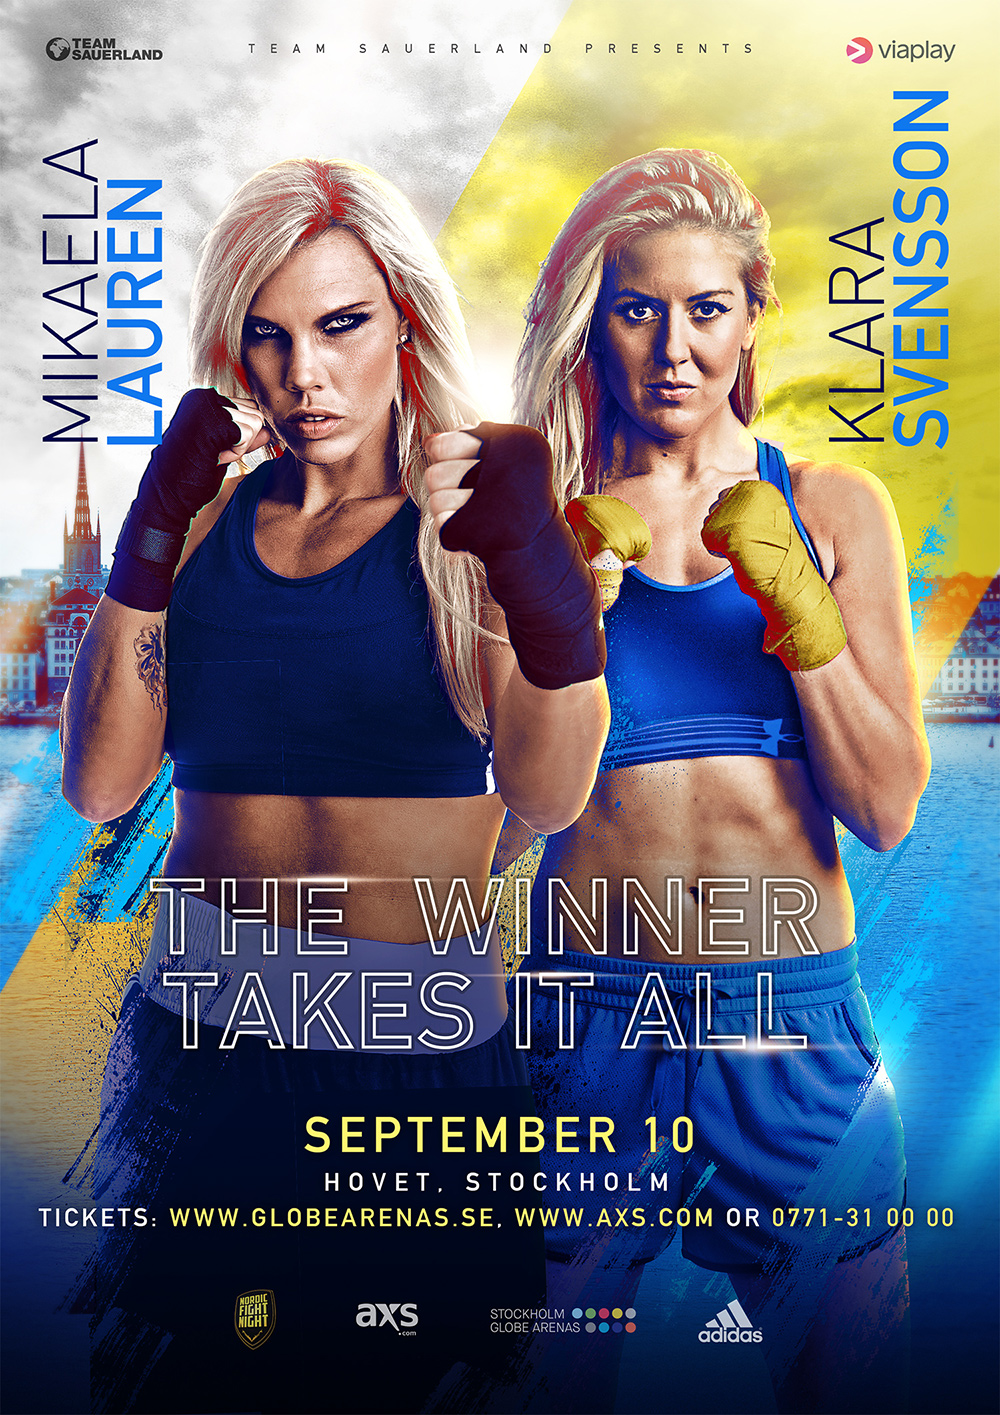 swedish fight poster for winner takes it all